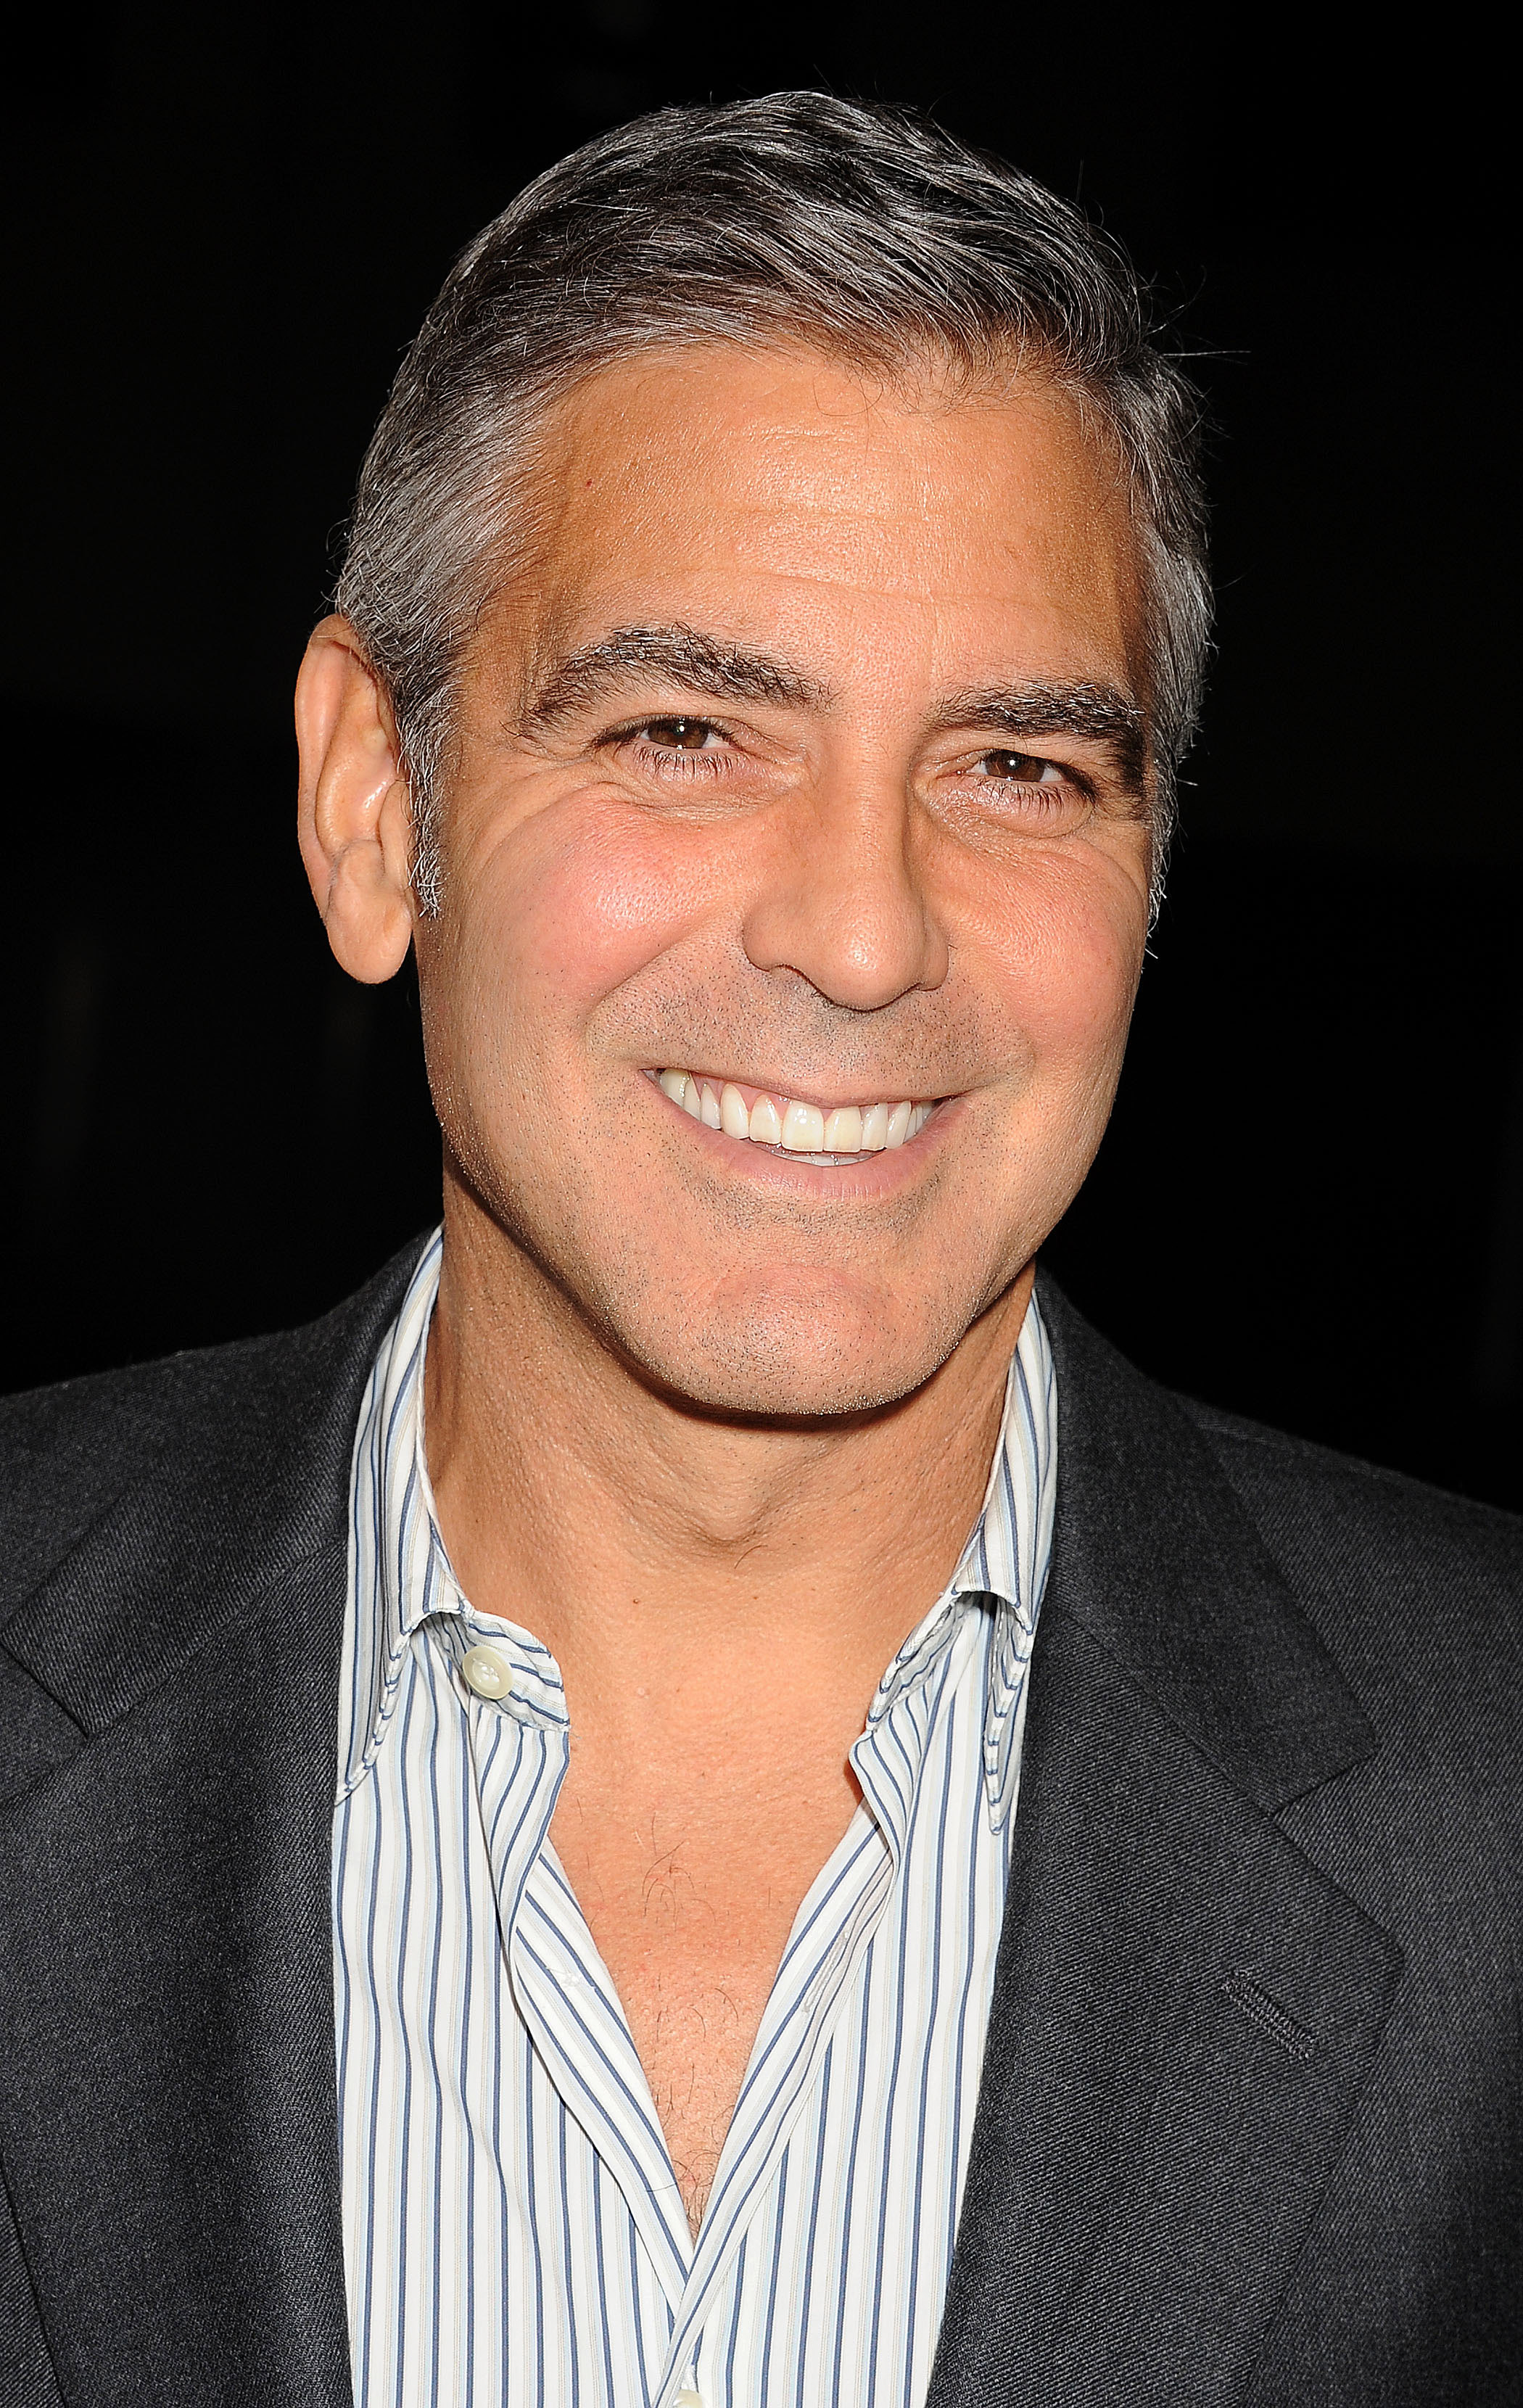 <b>George Clooney</b> gave a winning smile on the red carpet. - George-Clooney-gave-winning-smile-red-carpet